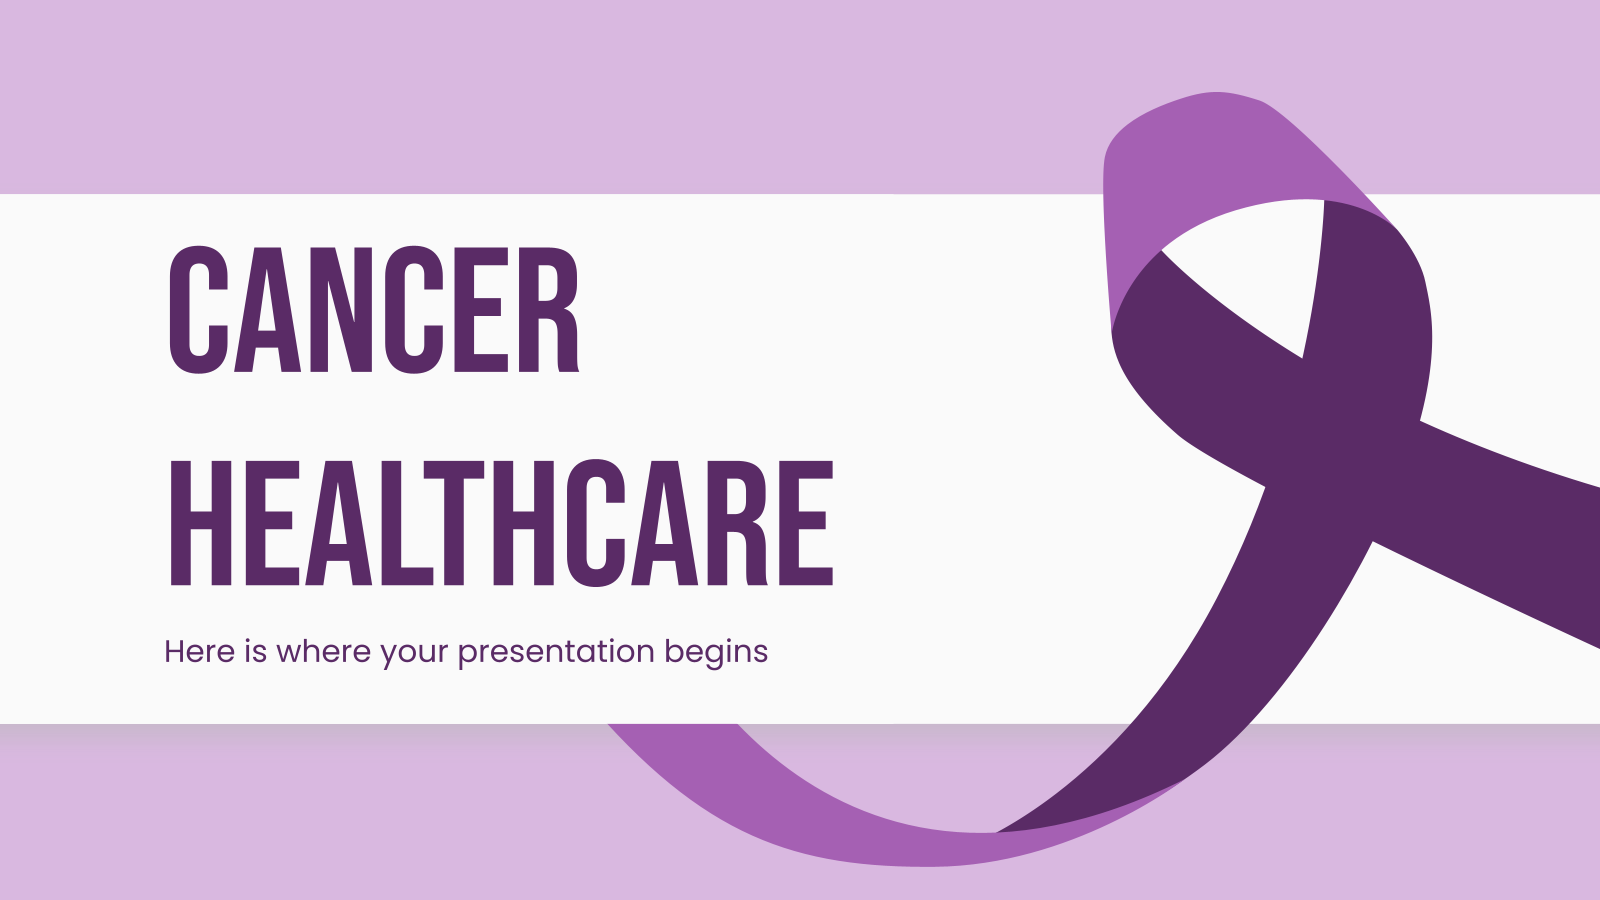 Cancer Healthcare Center presentation template